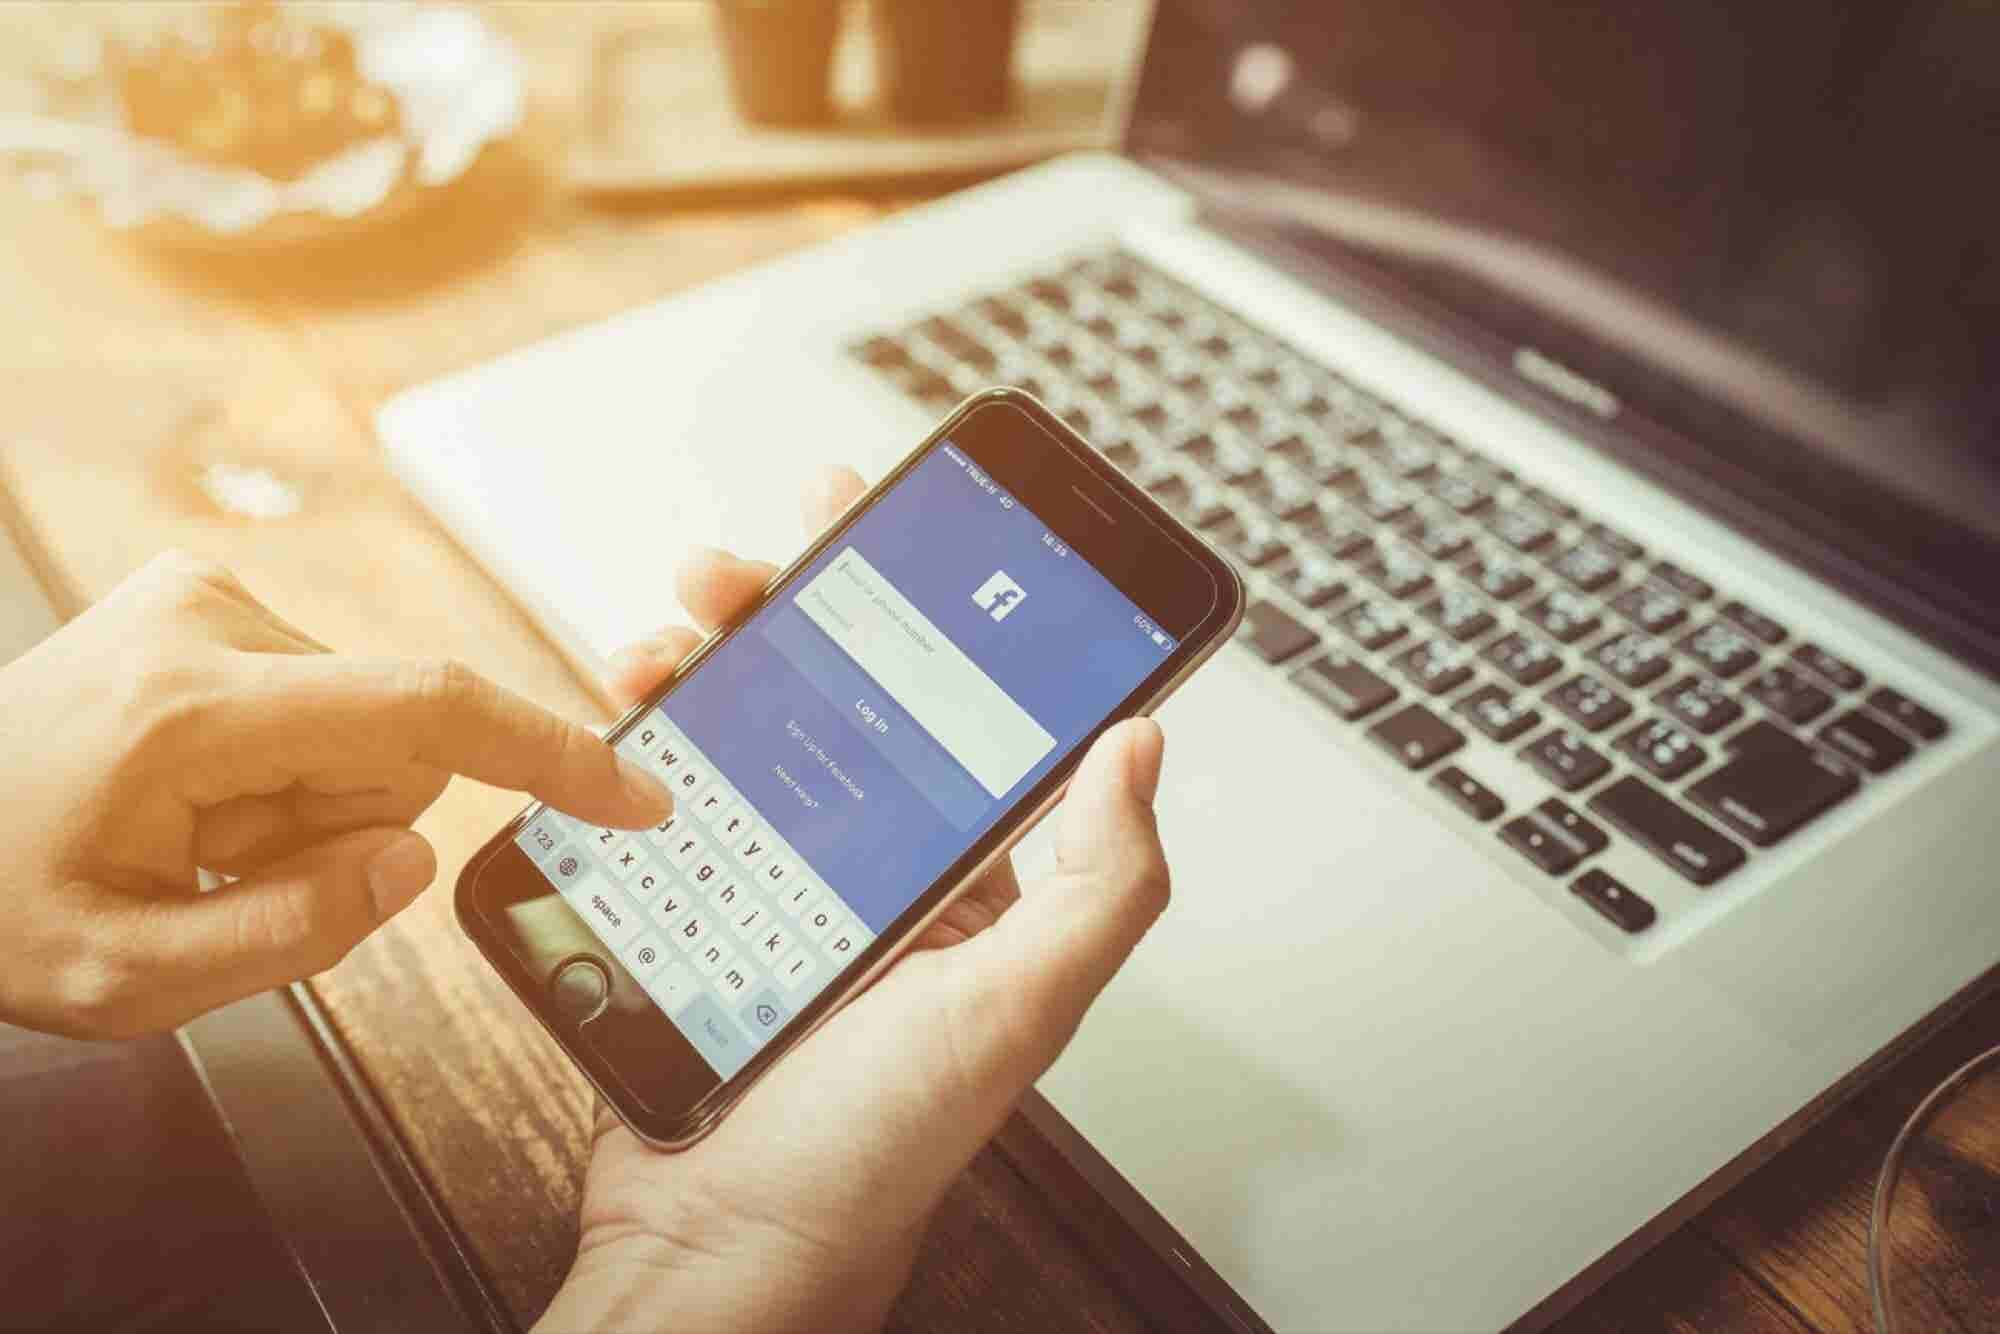 New Study Reveals That Using Facebook Diminishes Your Well-Being